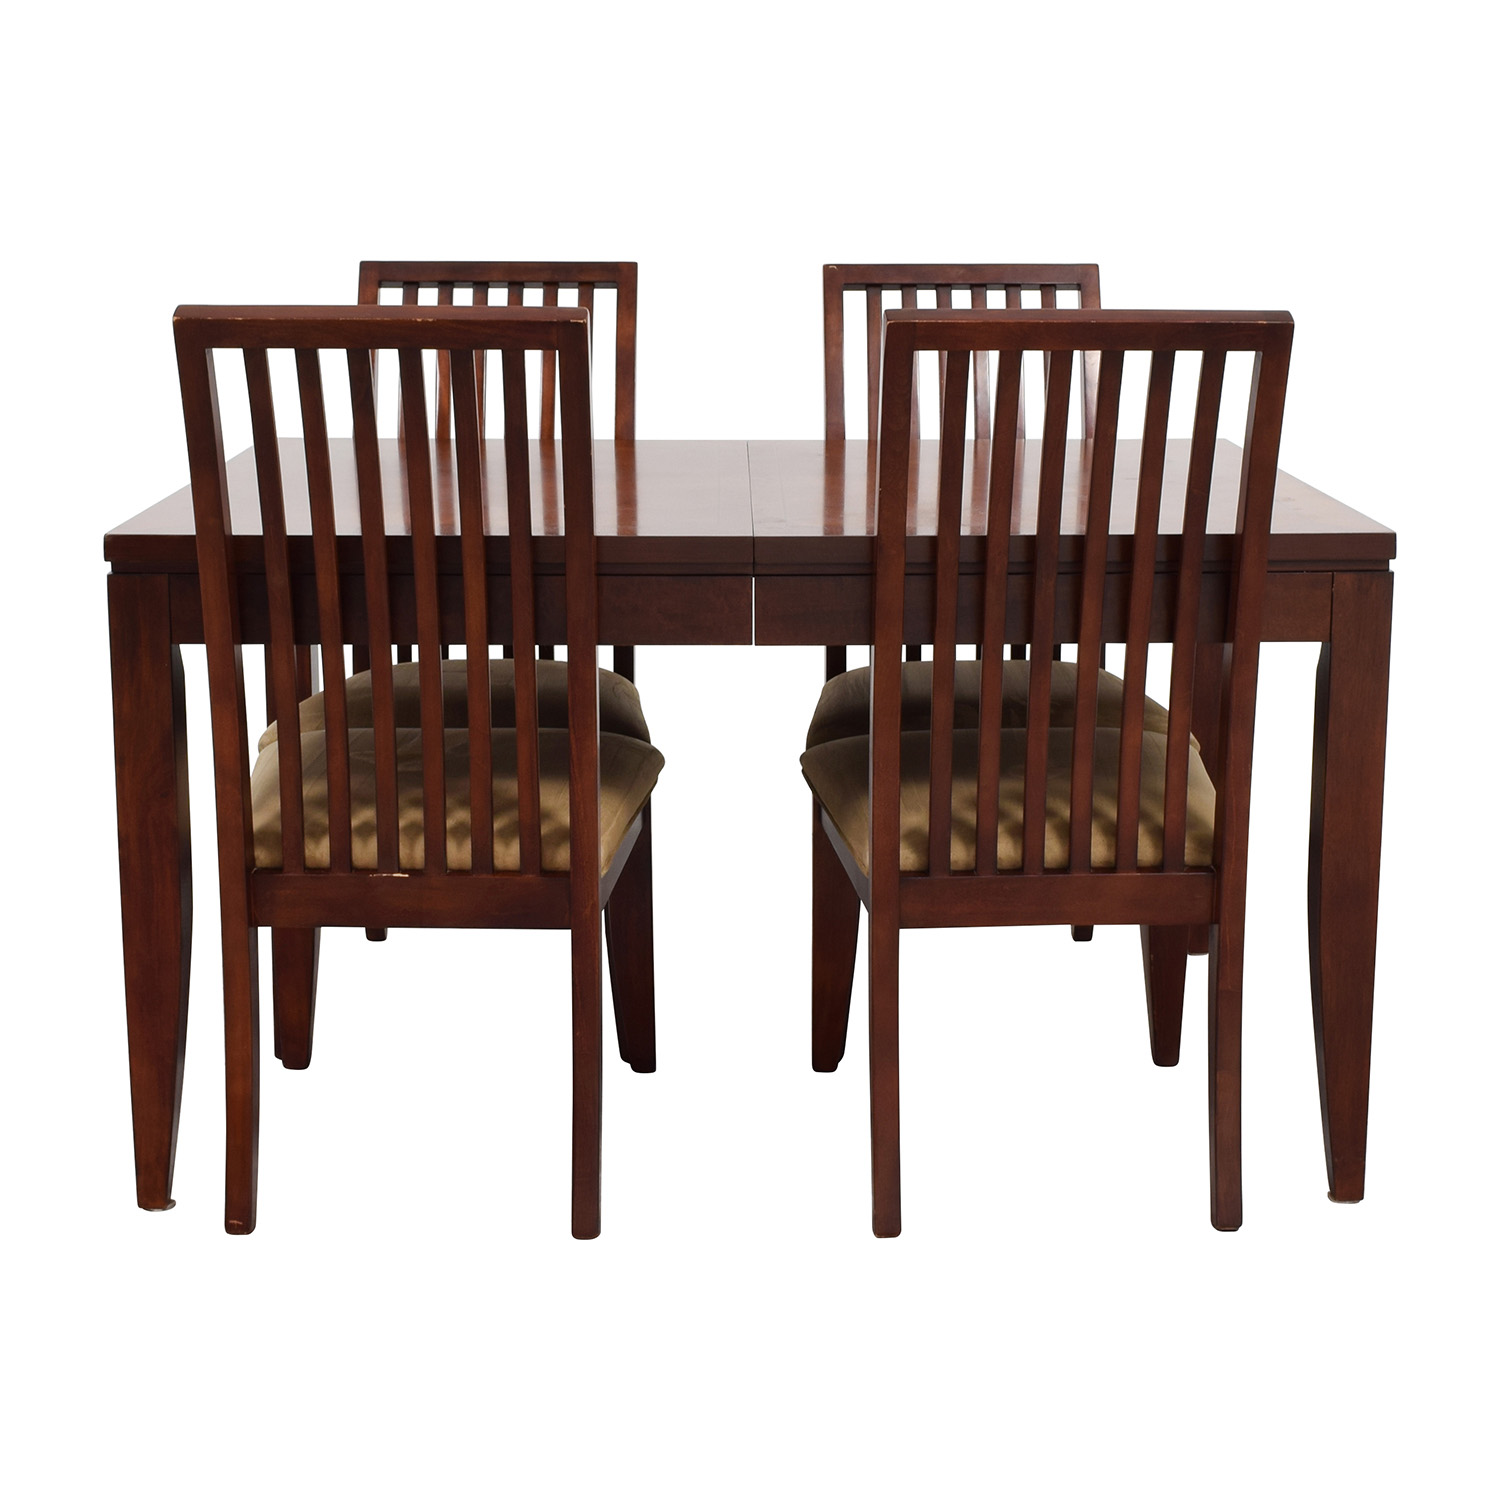 shop Macys Metropolitan Dining Set with Four Chairs Macys Tables